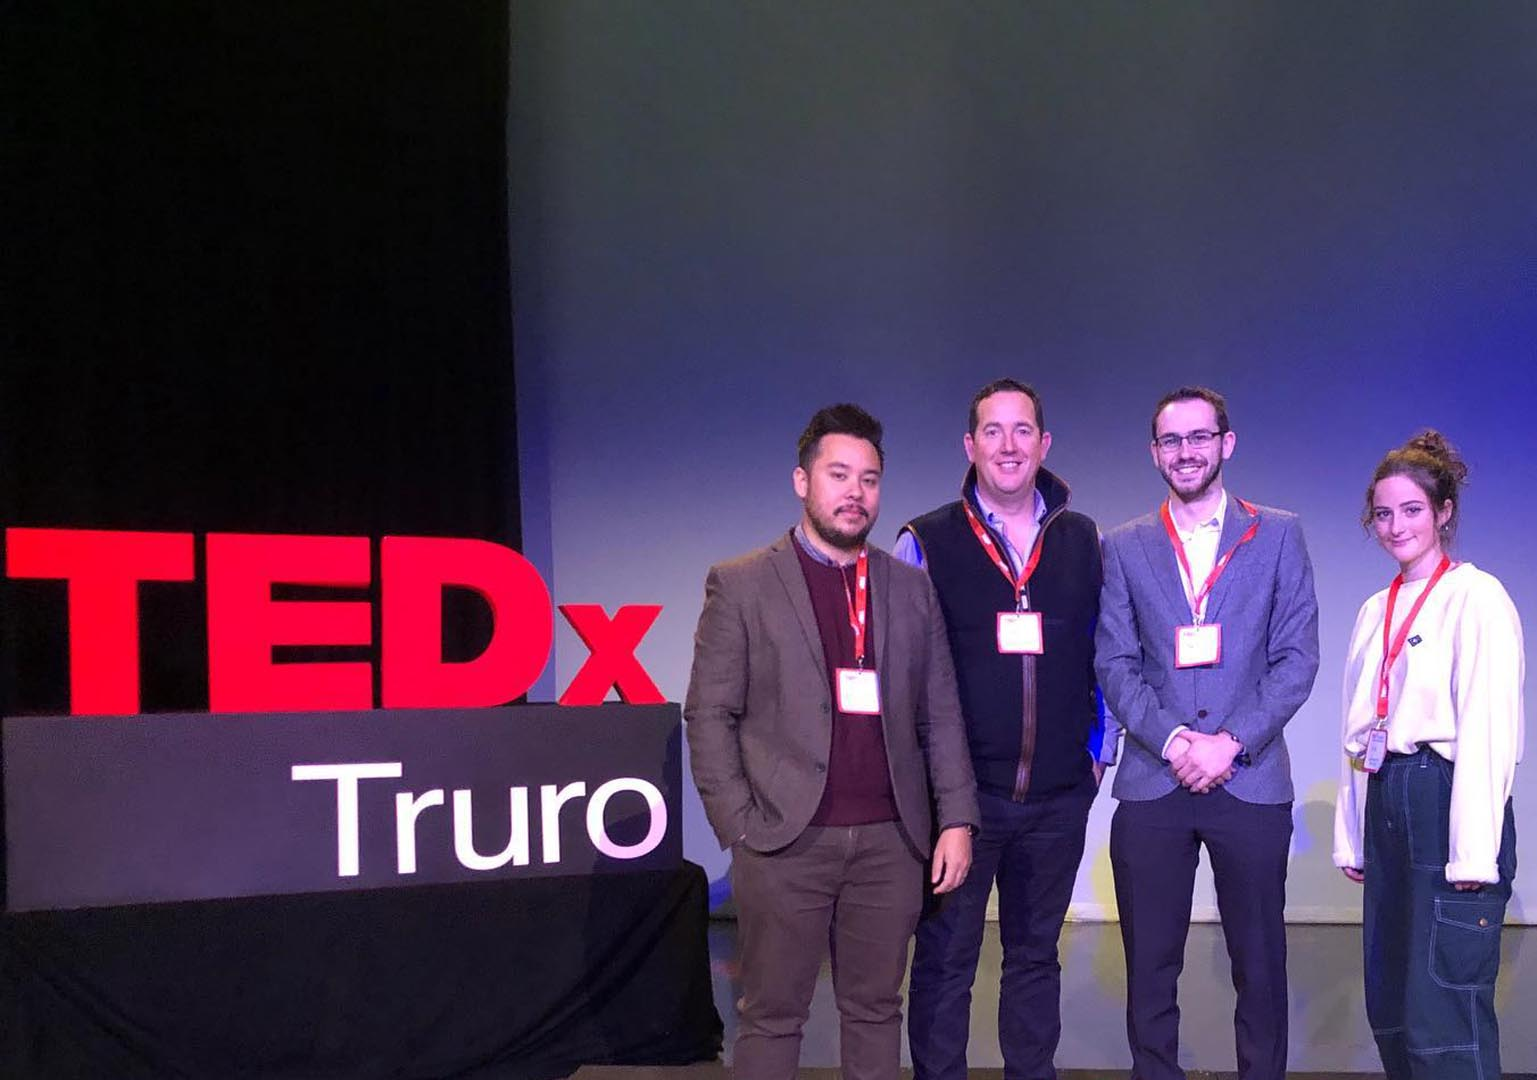 Exploring uncharted waters with TEDx Truro